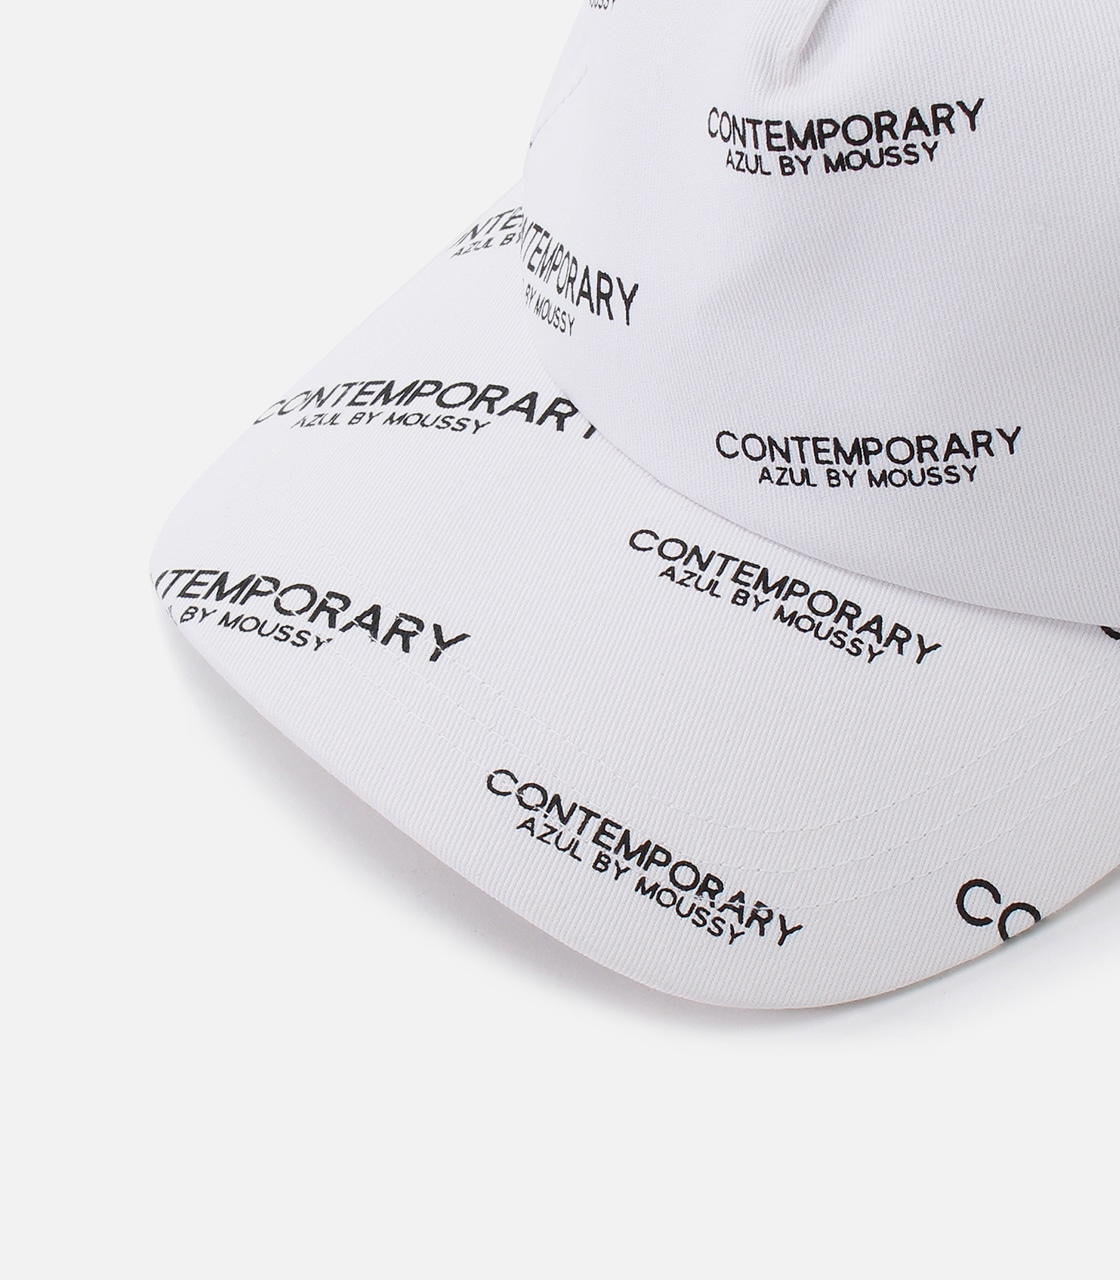 【AZUL BY MOUSSY】CONTEMPORARY 6PANEL CAP 詳細画像 柄WHT 5